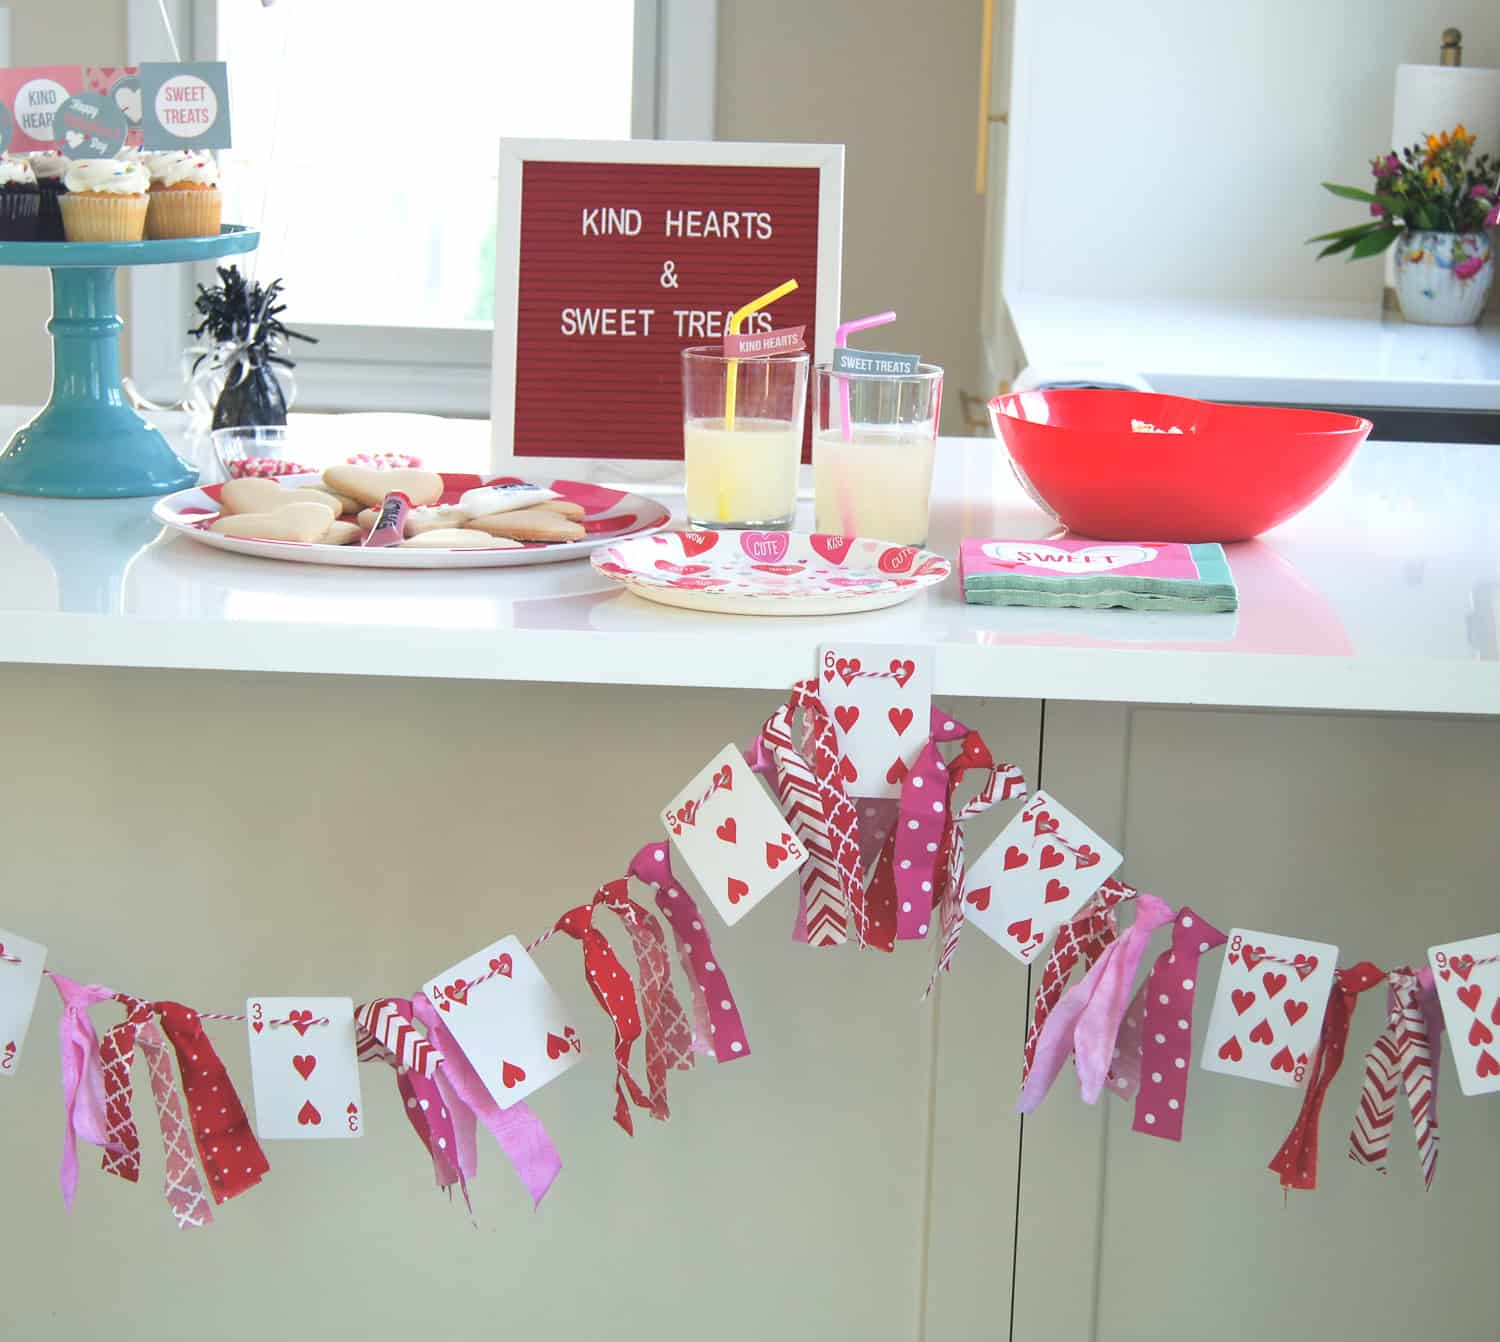 Valentine's play date food table with cupcakes, popcorn, and lemonade